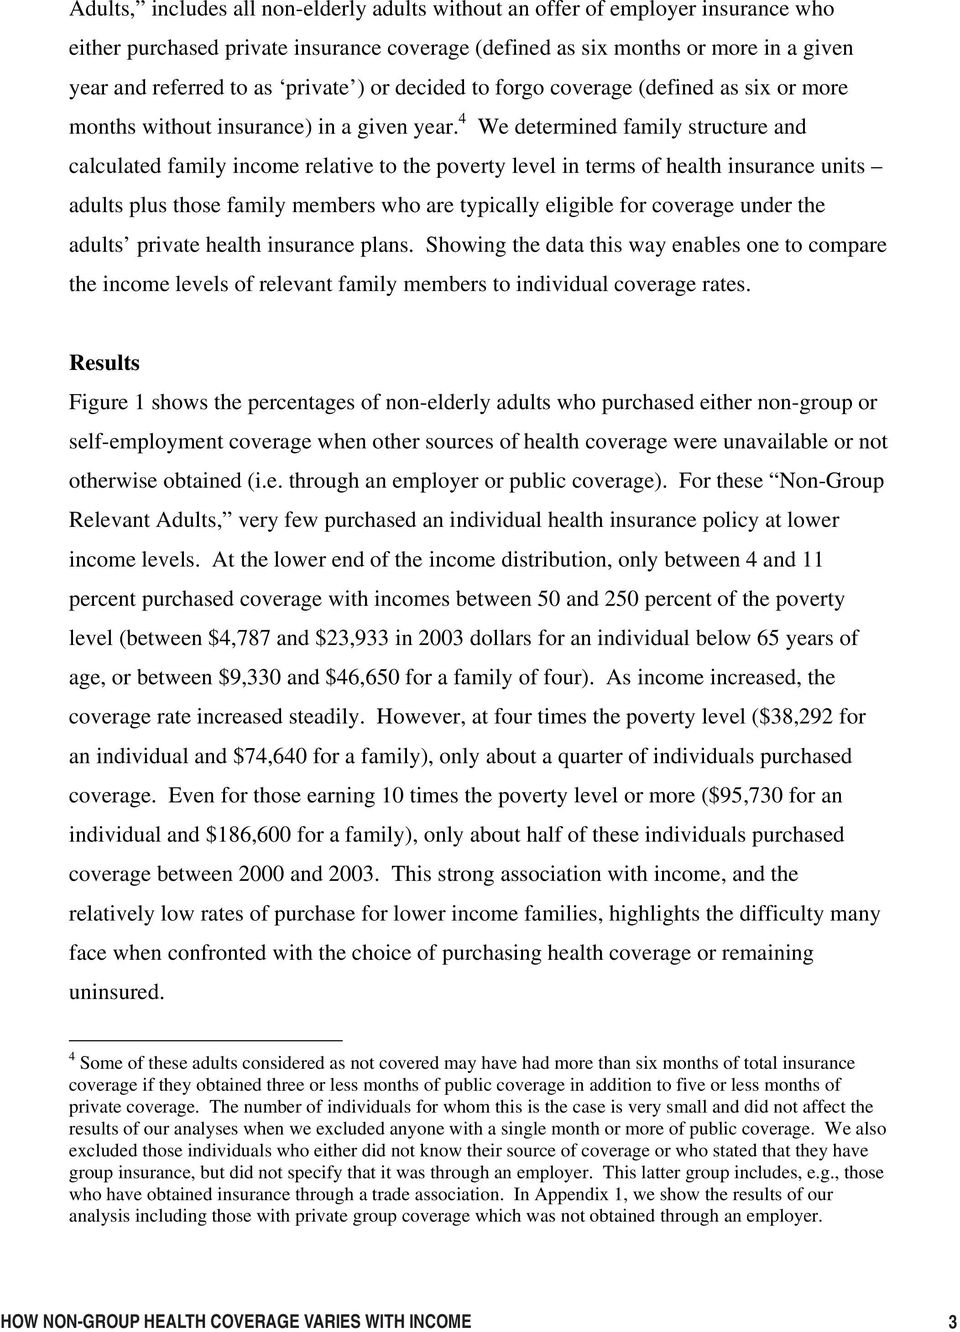 4 We determined family structure and calculated family income relative to the poverty level in terms of health insurance units adults plus those family members who are typically eligible for coverage